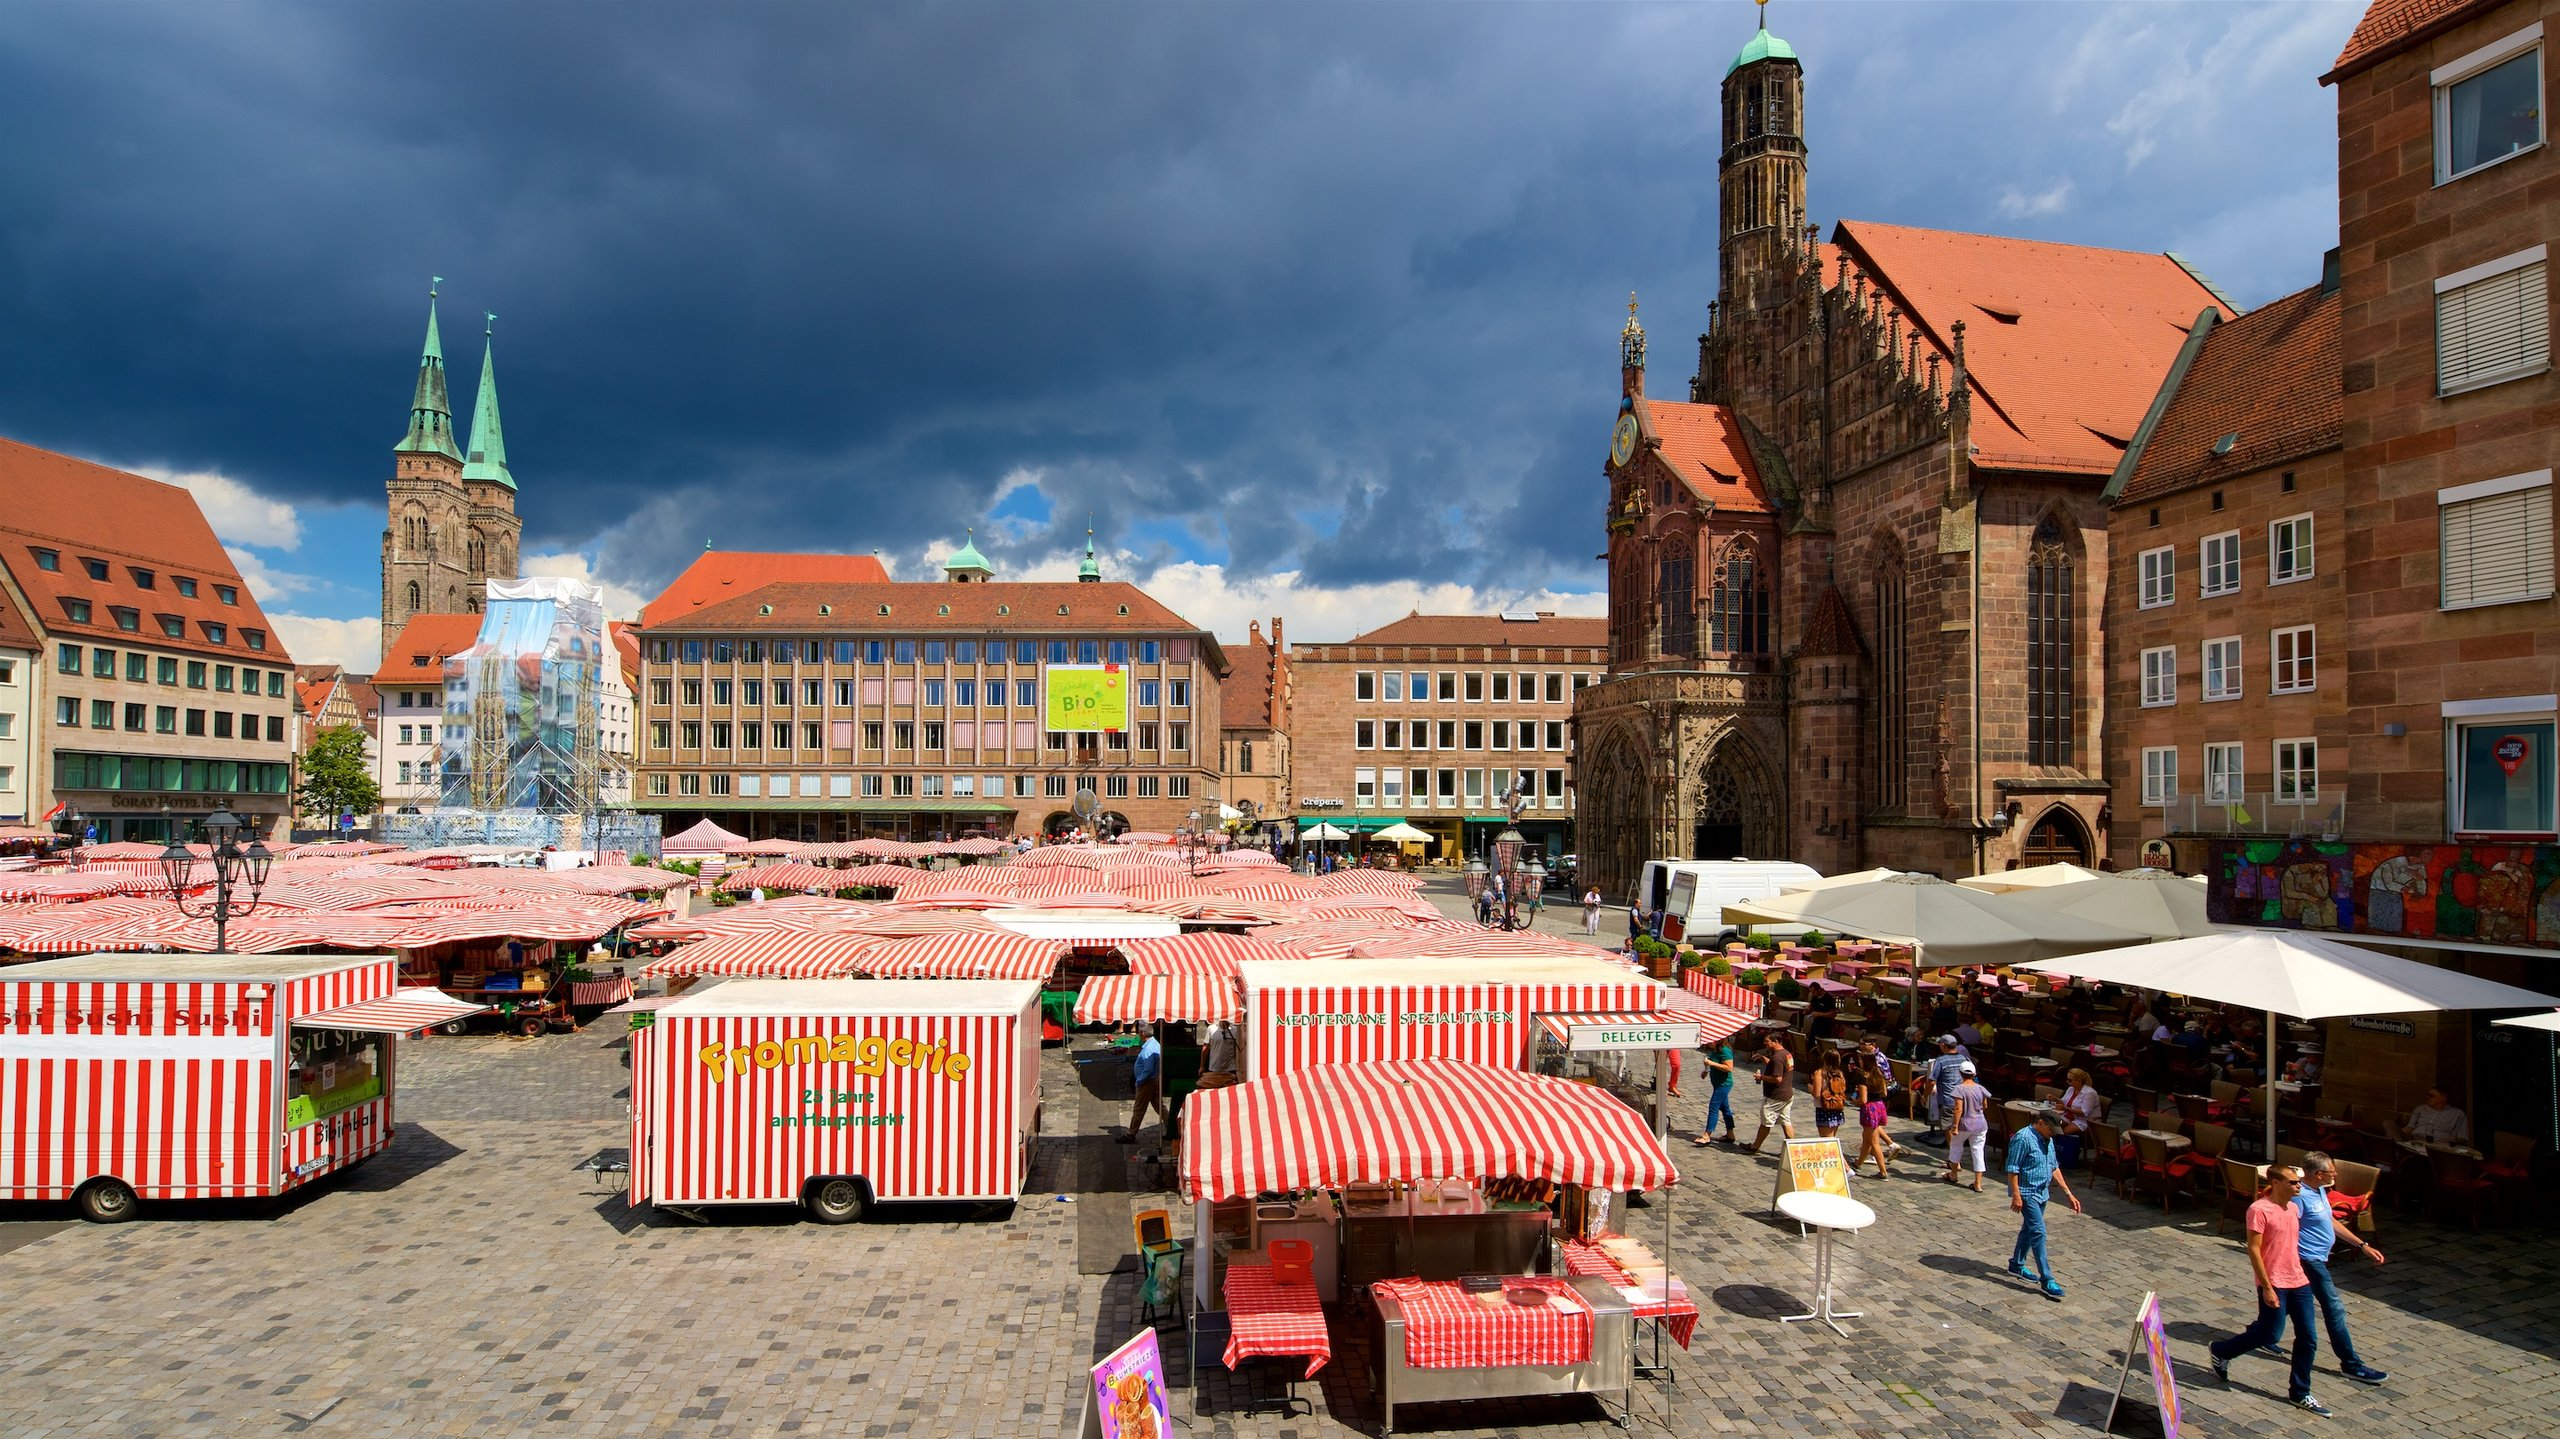 Discover the heart of Nuremberg when you visit the city's historic central square, which is used regularly as a marketplace to this day.